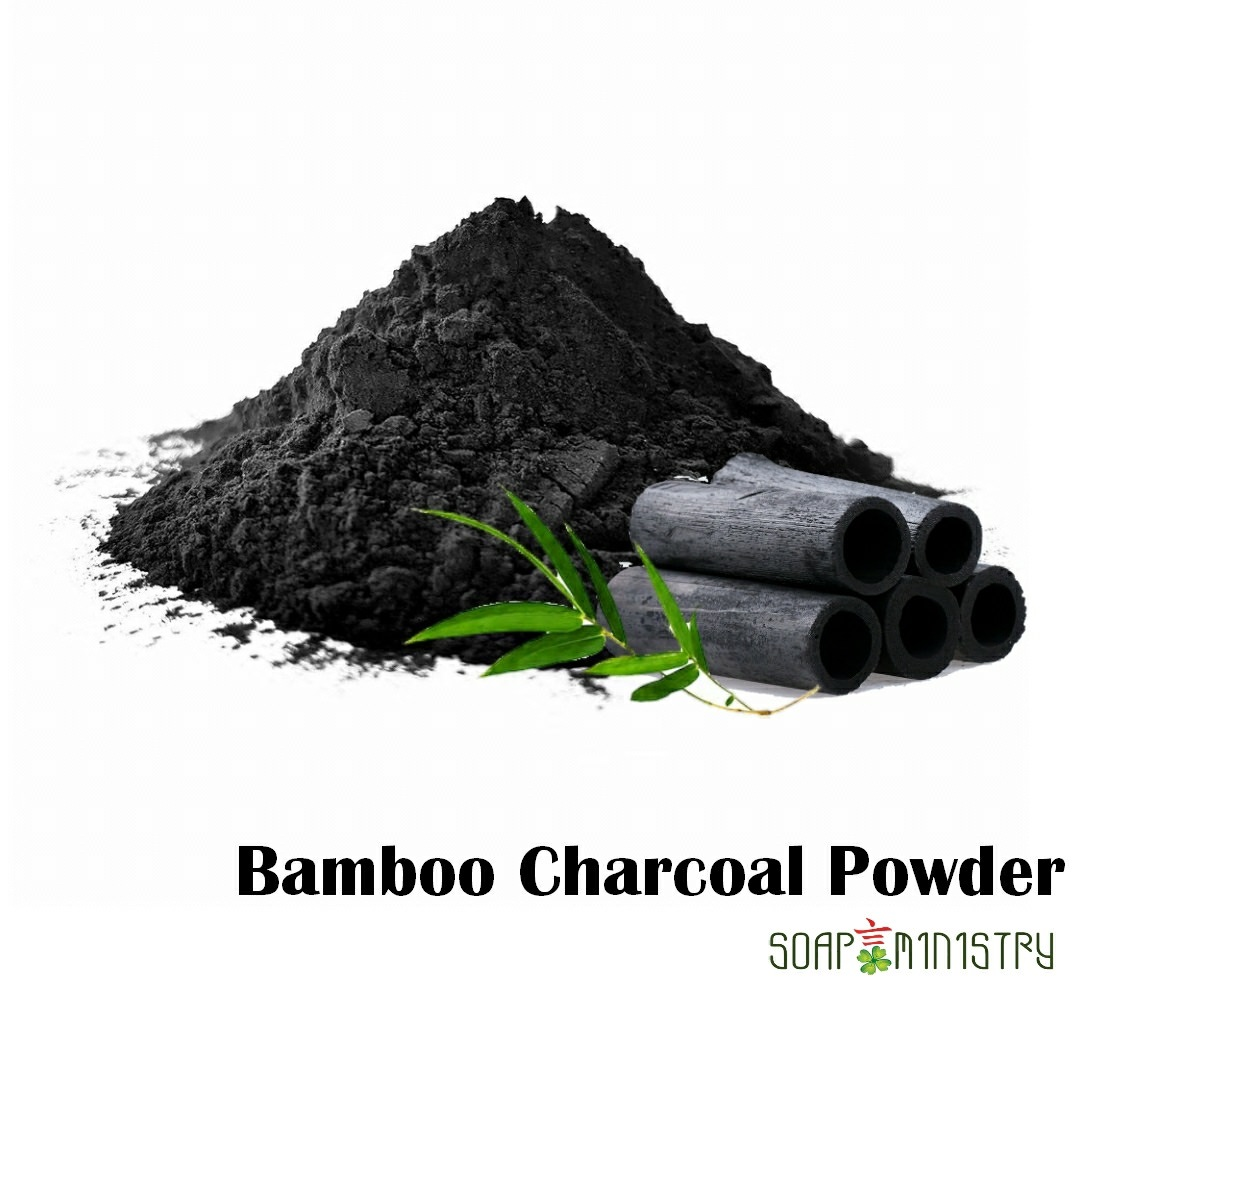 Bamboo Charcoal Powder 250g